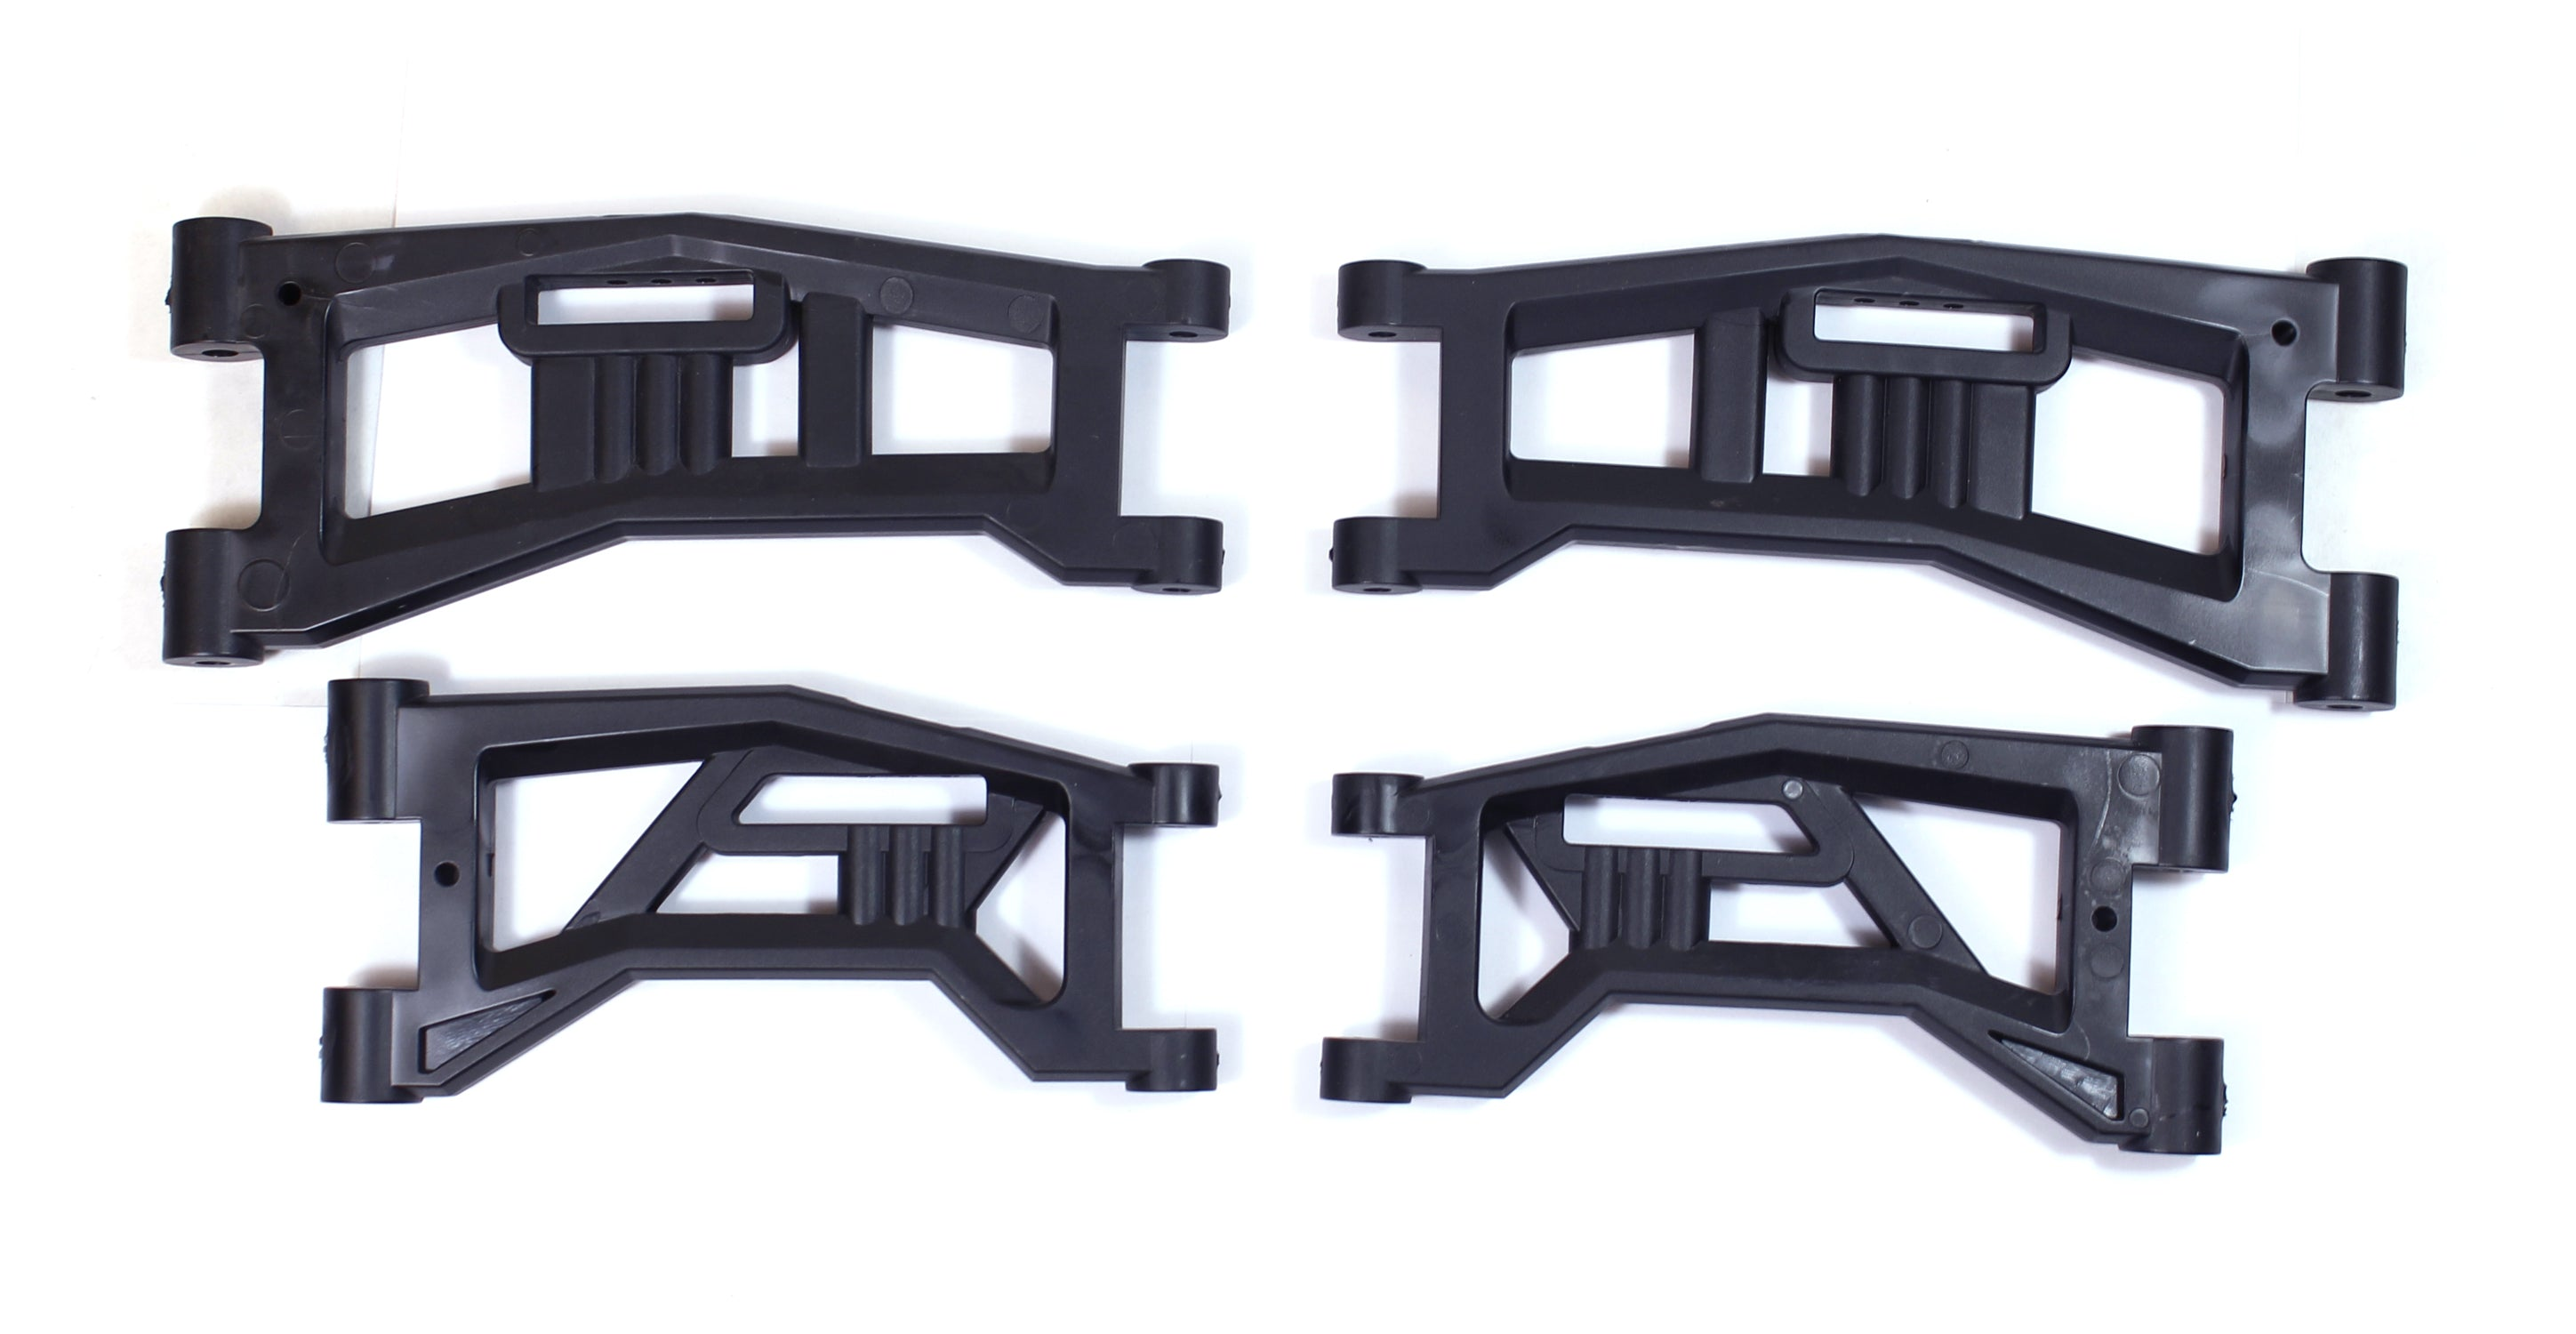 Rage Suspension Arm Set, Front/Rear, for RZX, (4pcs) RGRC6046